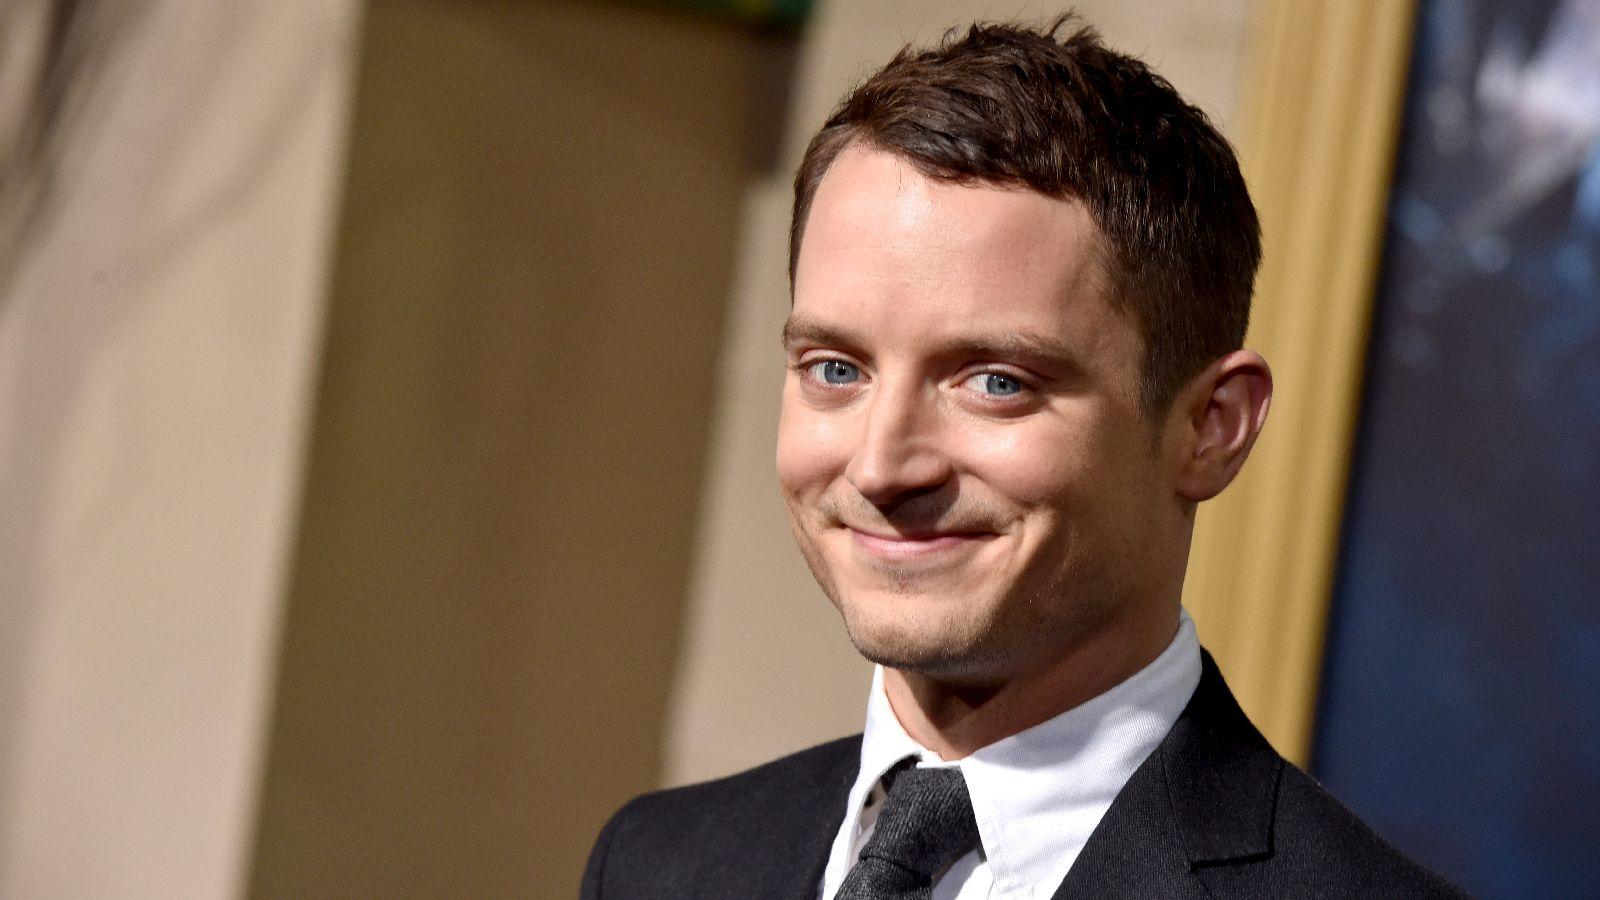 Dorian Gray...vagyis..khm...Elijah Wood 36 (!!!!) éves. (Getty Images)